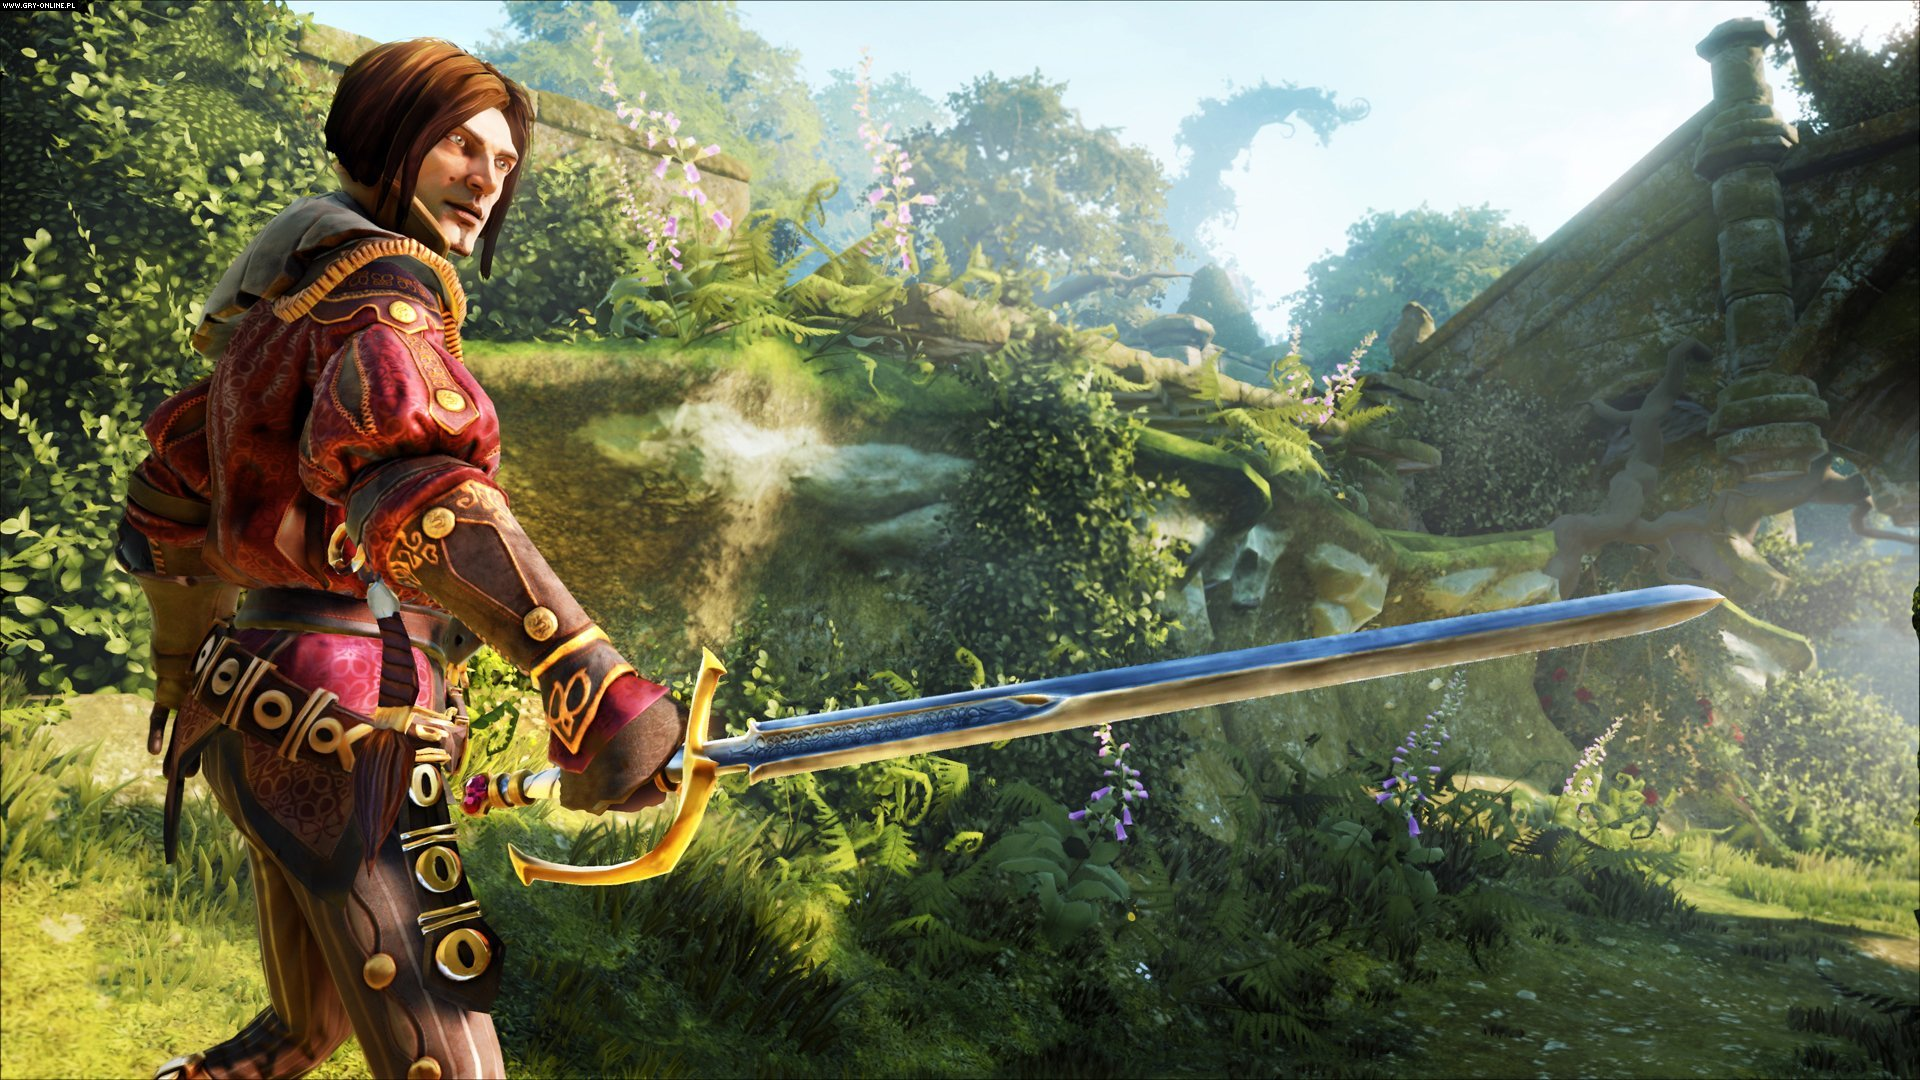 Fable Legends XONE Gry Screen 62/63, LionHead Studios, Microsoft Studios